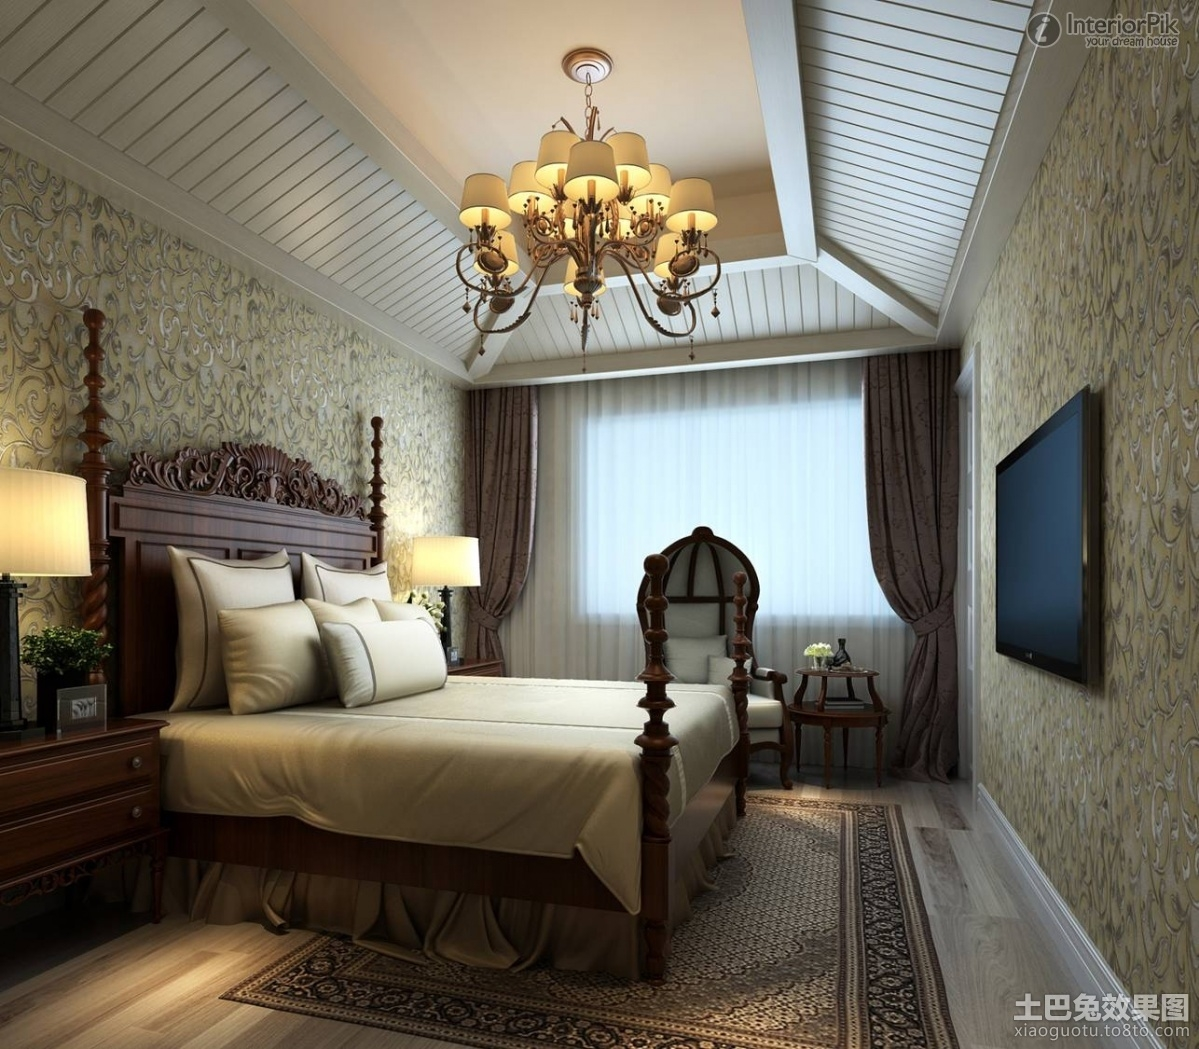 Chandeliers For Bedrooms Bhbr Info In Bedroom With Chandelier For Bedroom Chandeliers (View 13 of 15)